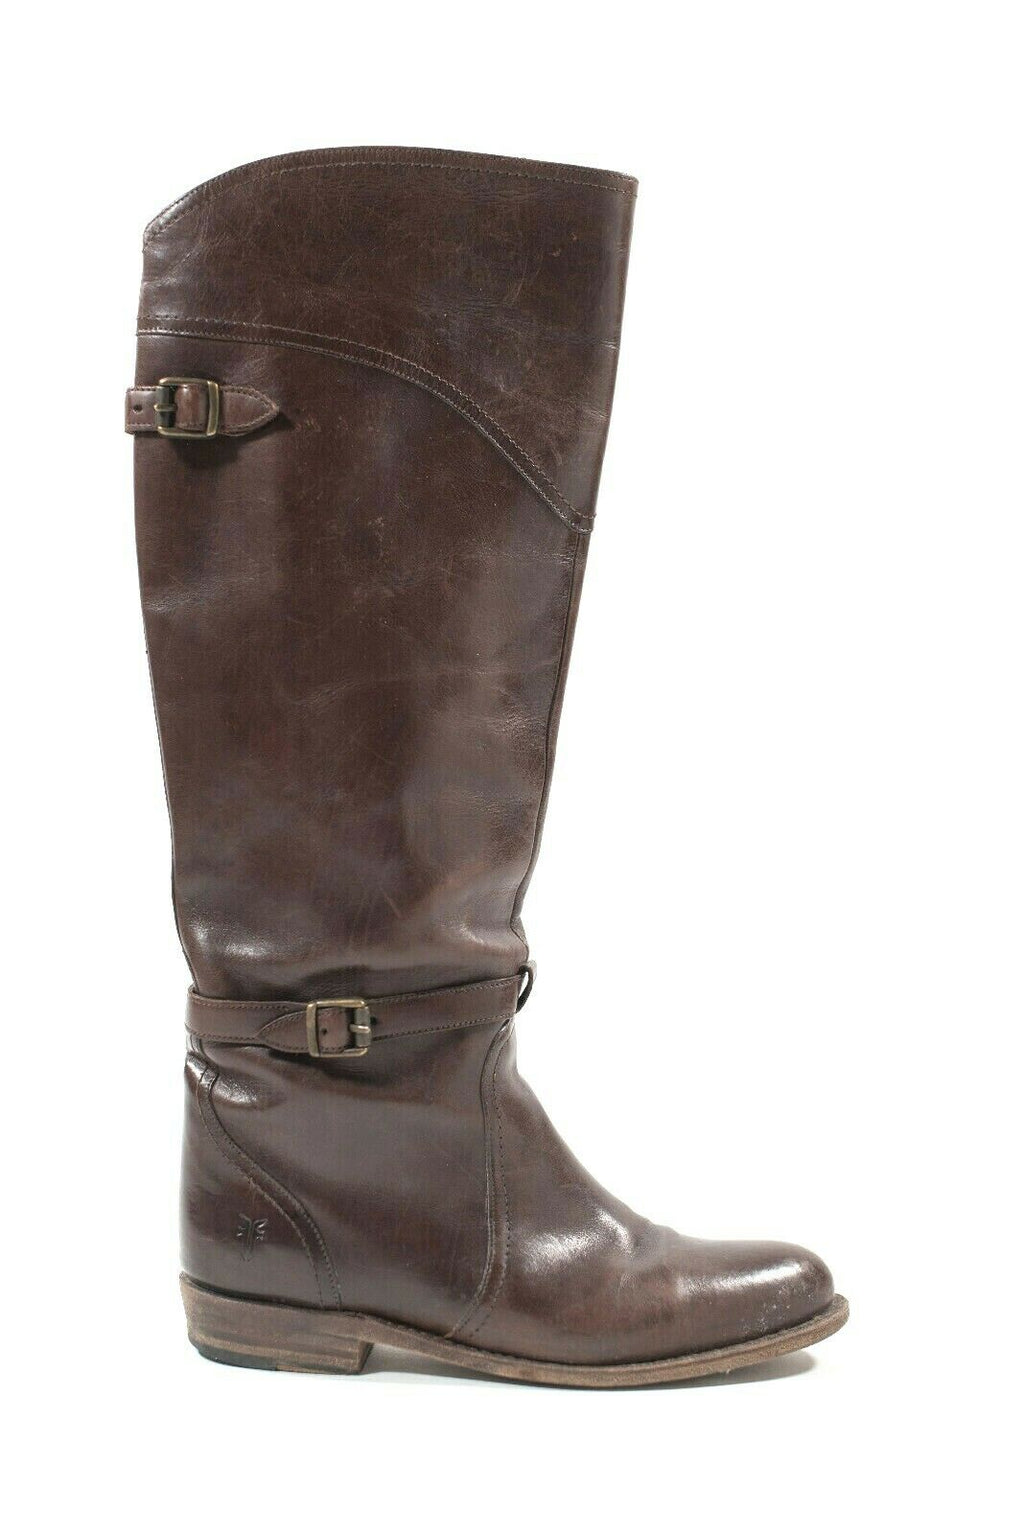 Frye Womens Size 7 M Brown Boots Tall Leather Riding Boots Ankle Strap Low Heel